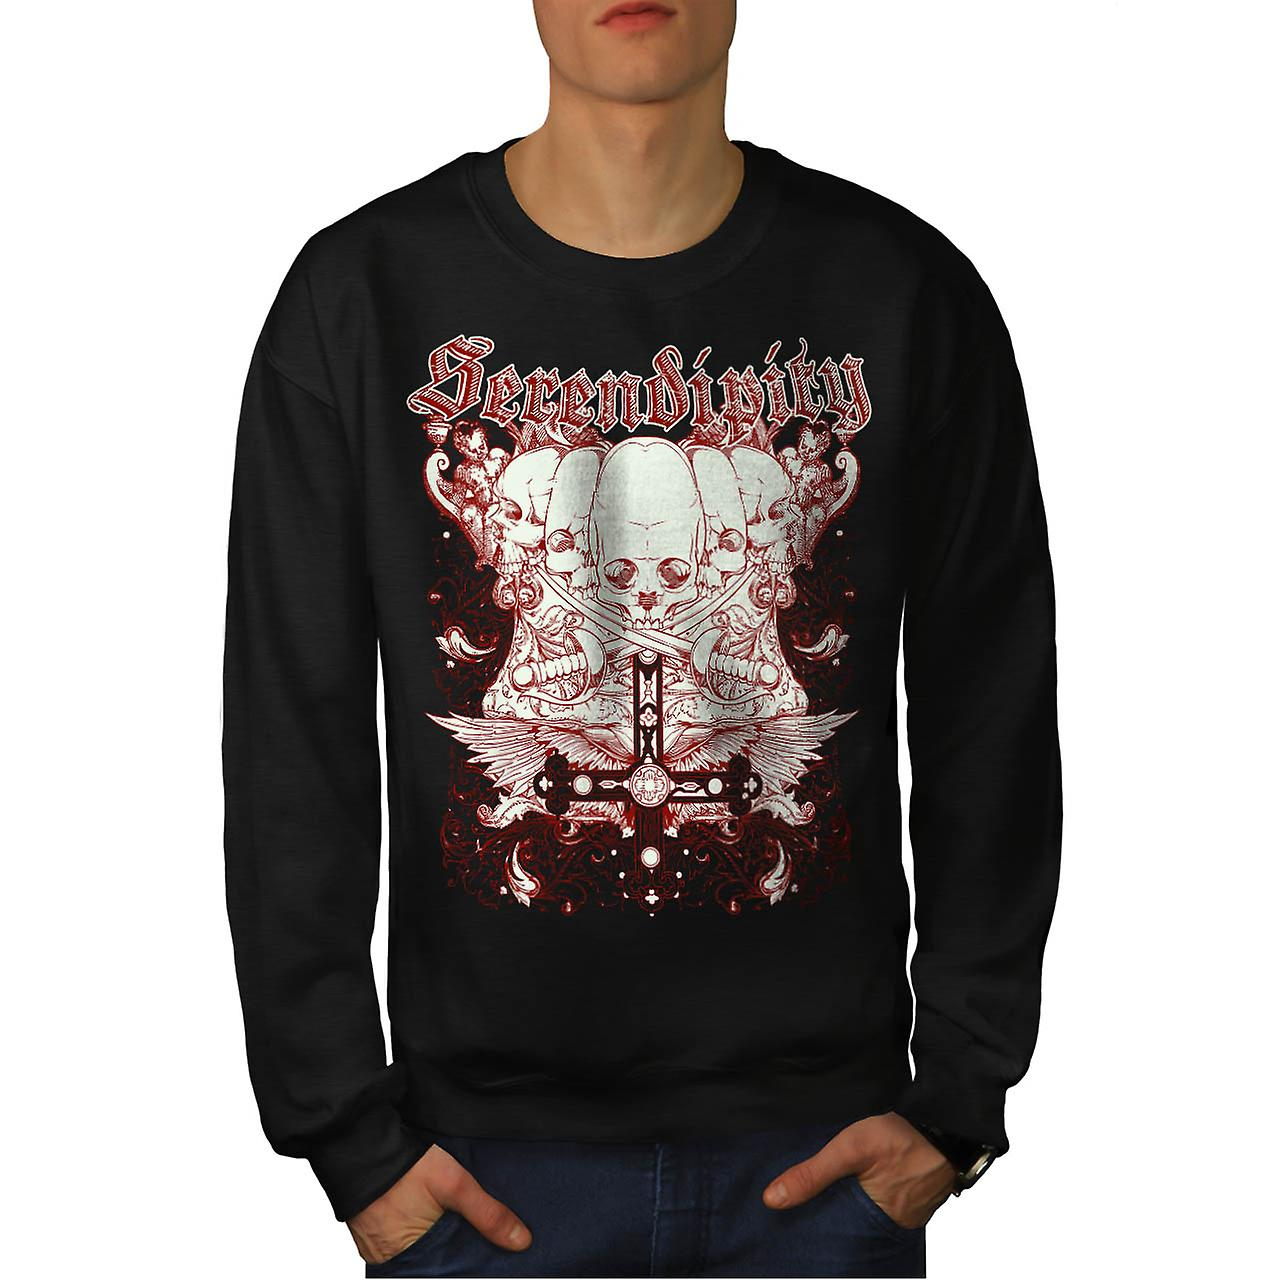 Serendipity Tombstone Grave Yard Men Black Sweatshirt | Wellcoda